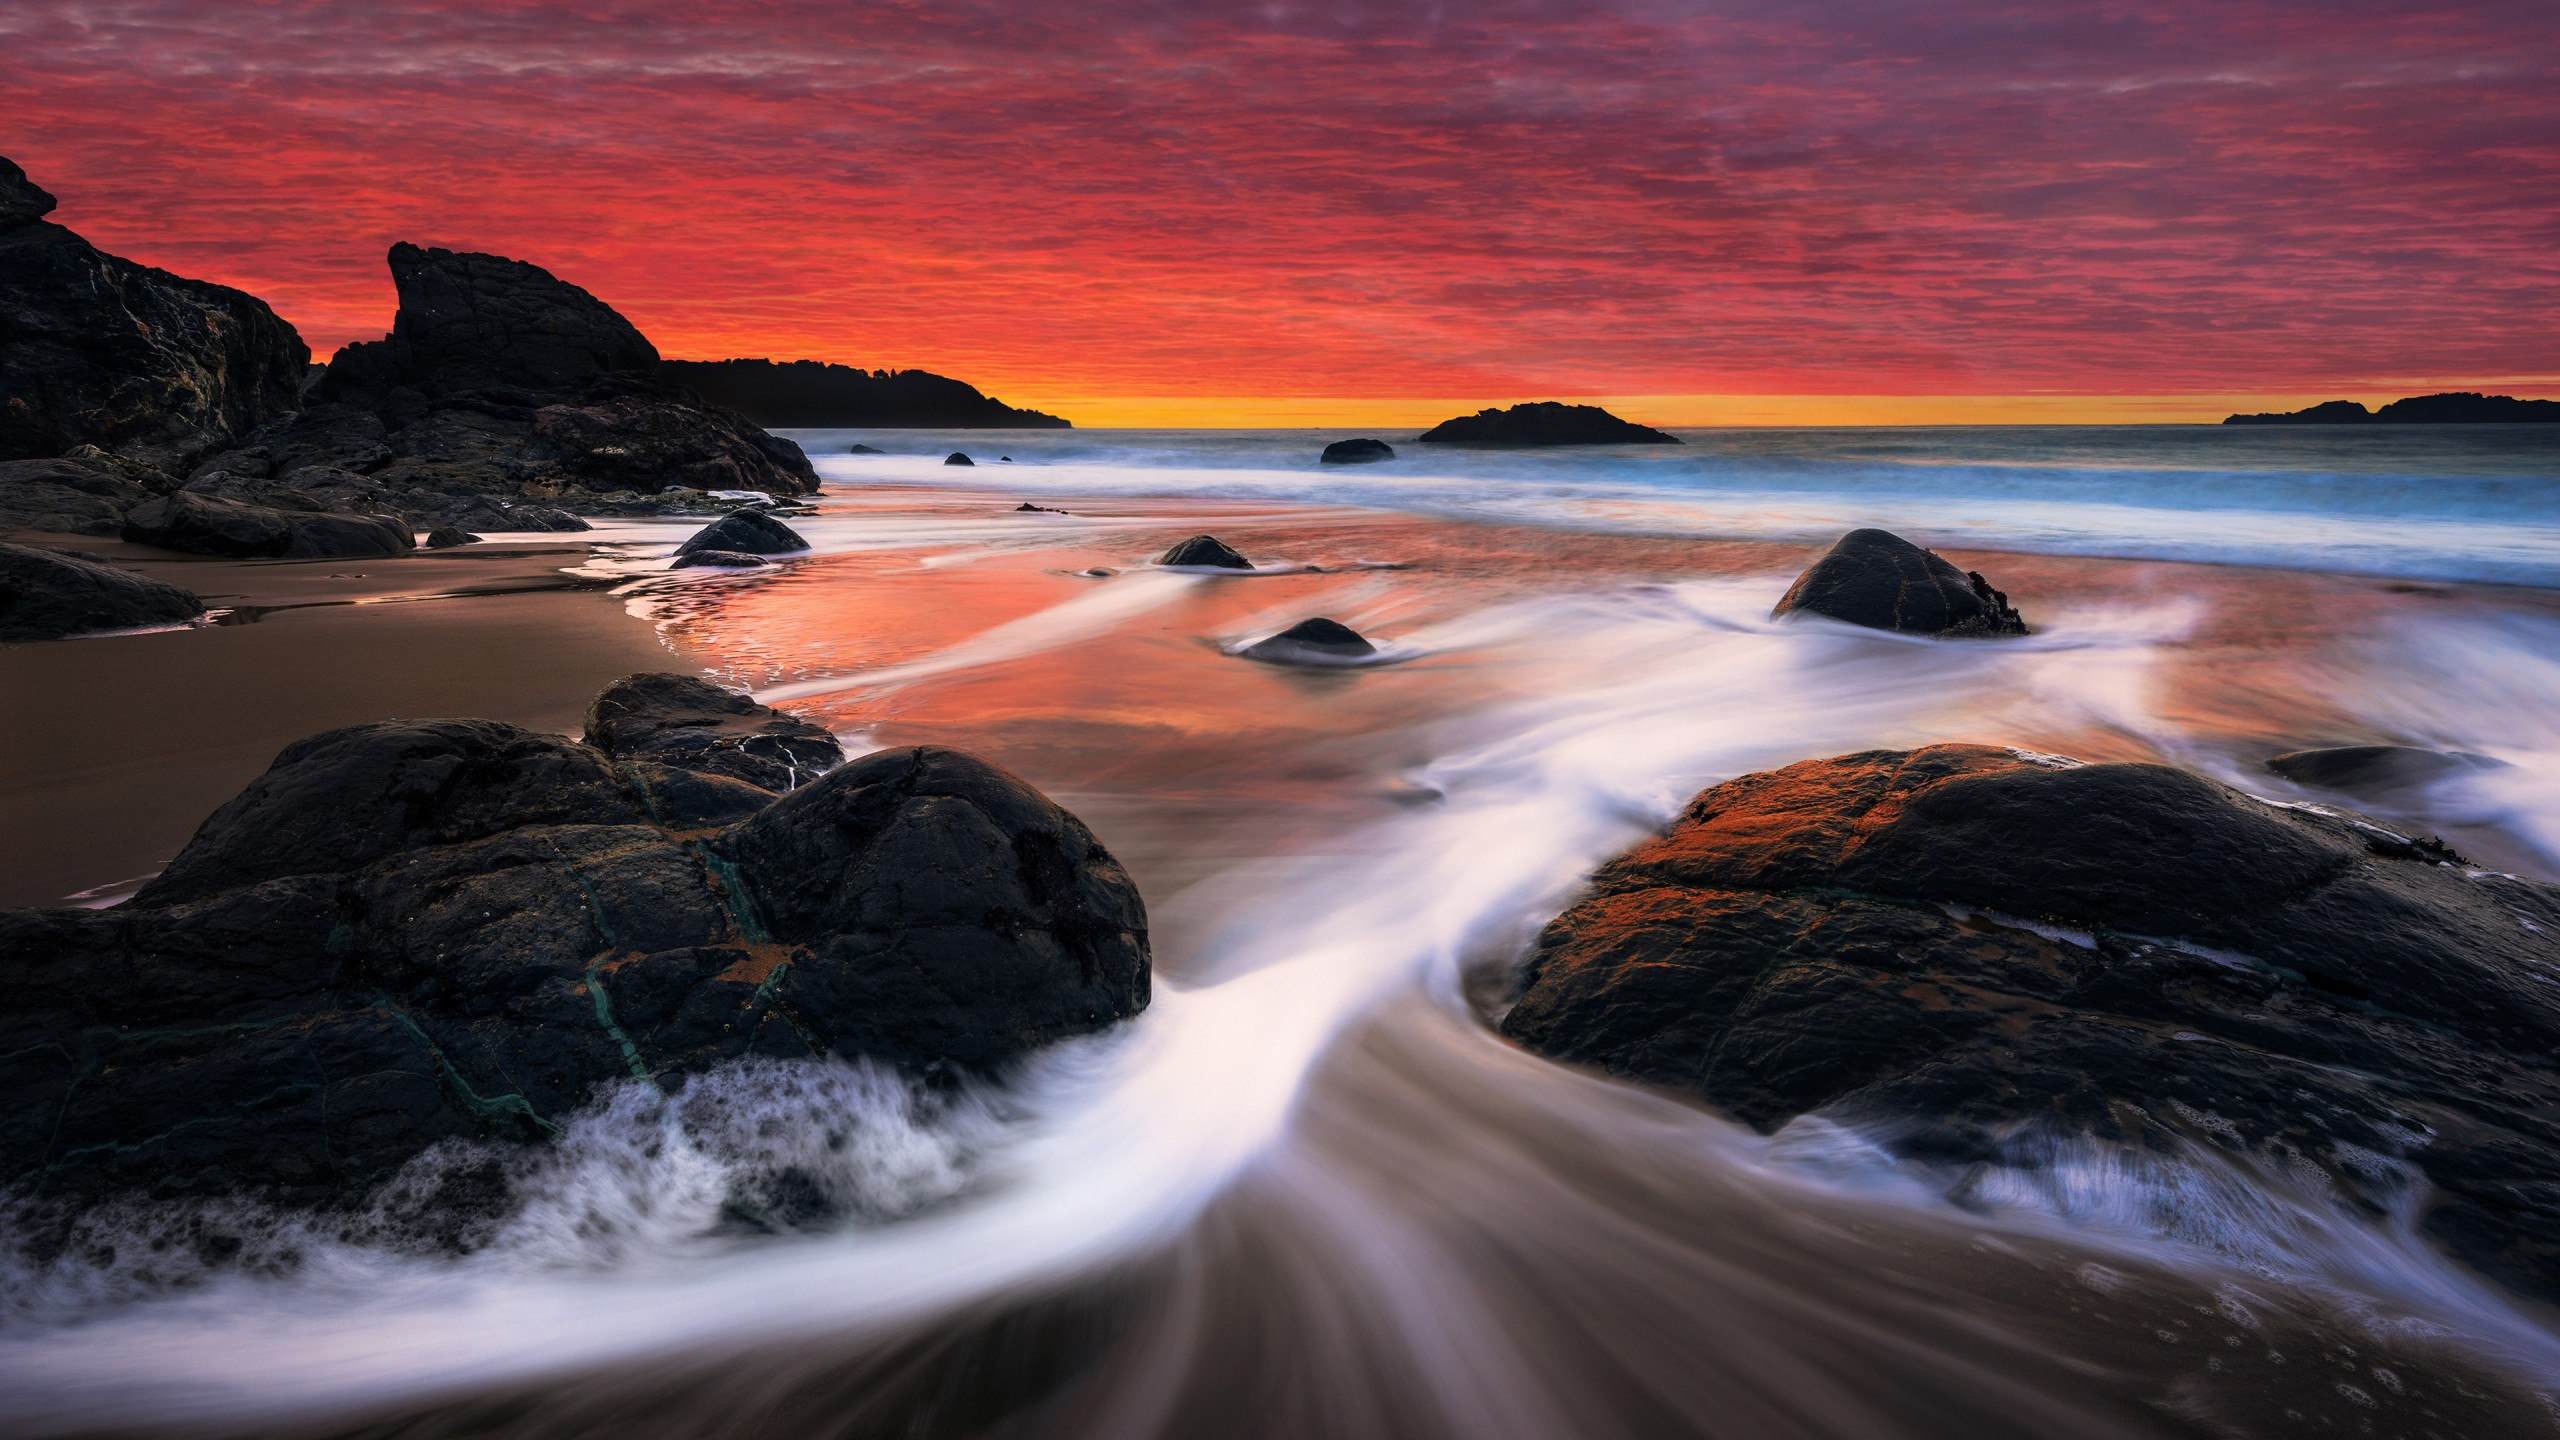 Cute Pink Wallpaper For Iphone 6 Sunset Rocks Shore Beach Stream Wallpapers Hd Wallpapers